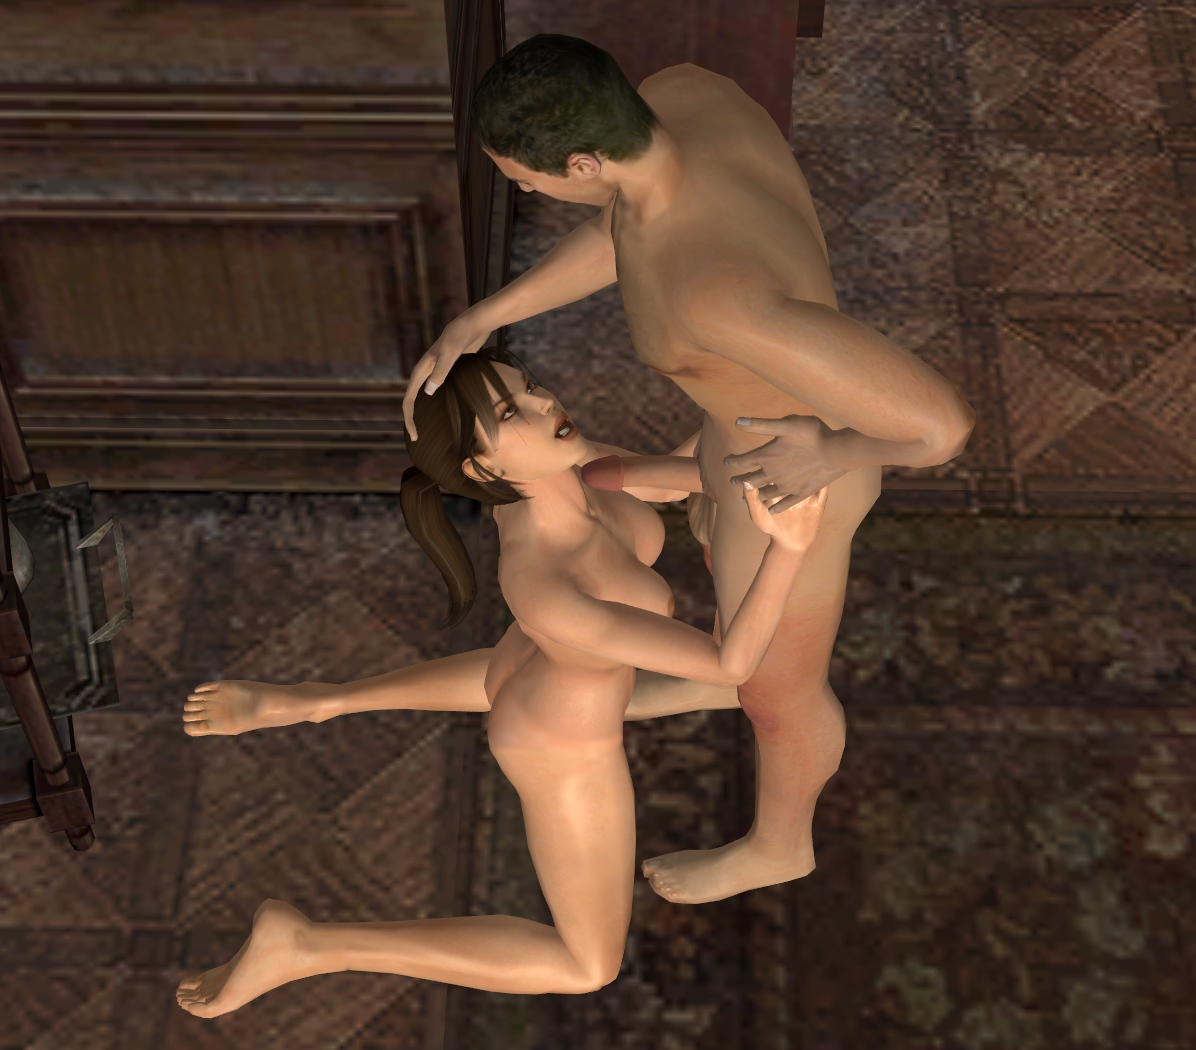 Tomb raider lara croft nude mod fucks chick